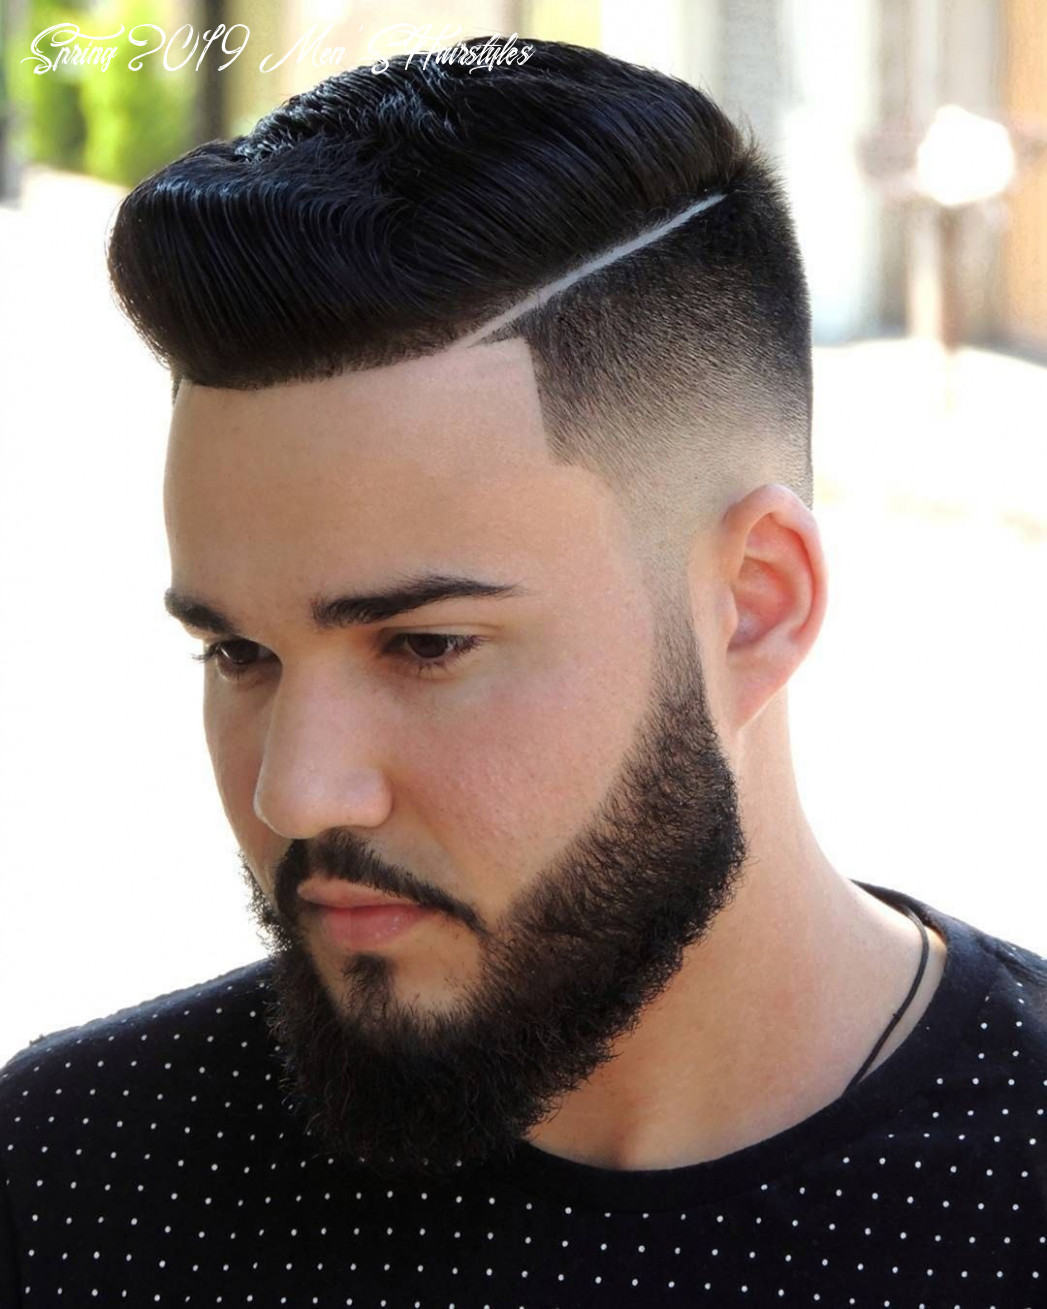 12 classic short hairstyles ideas for cool men   mens hairstyles